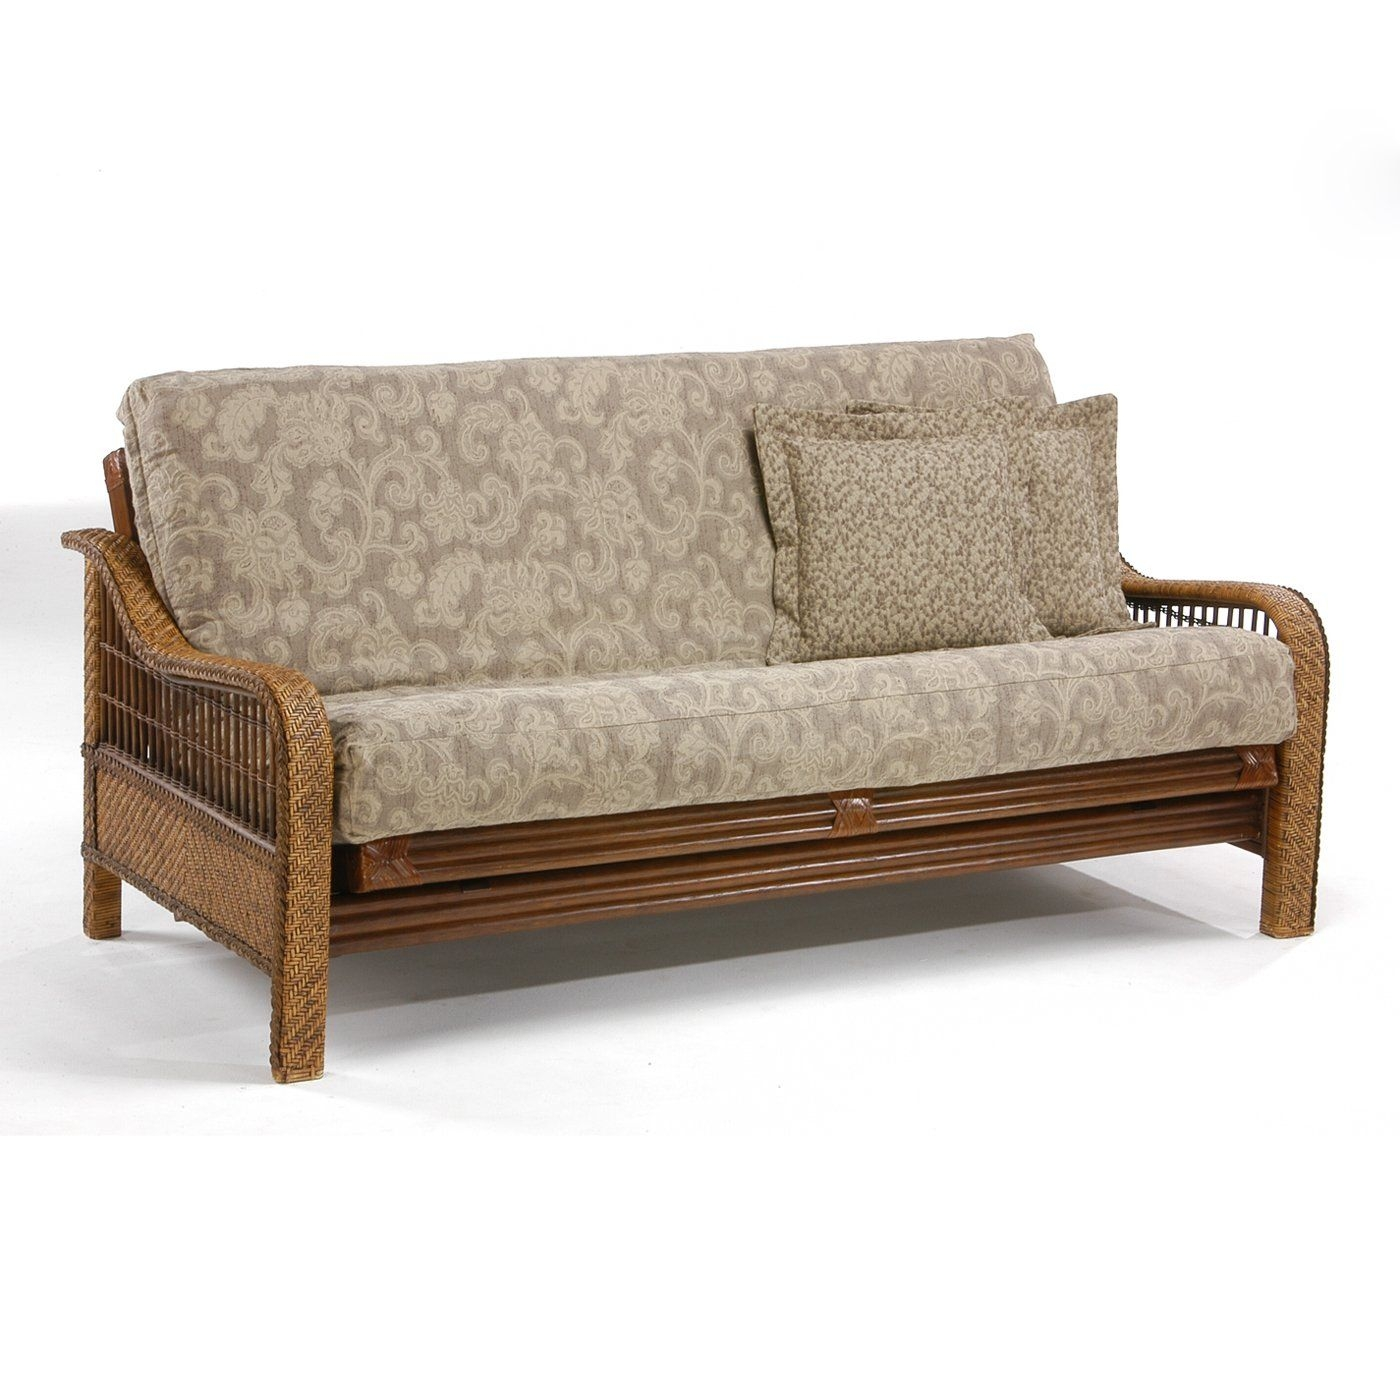 wicker-futon-bed